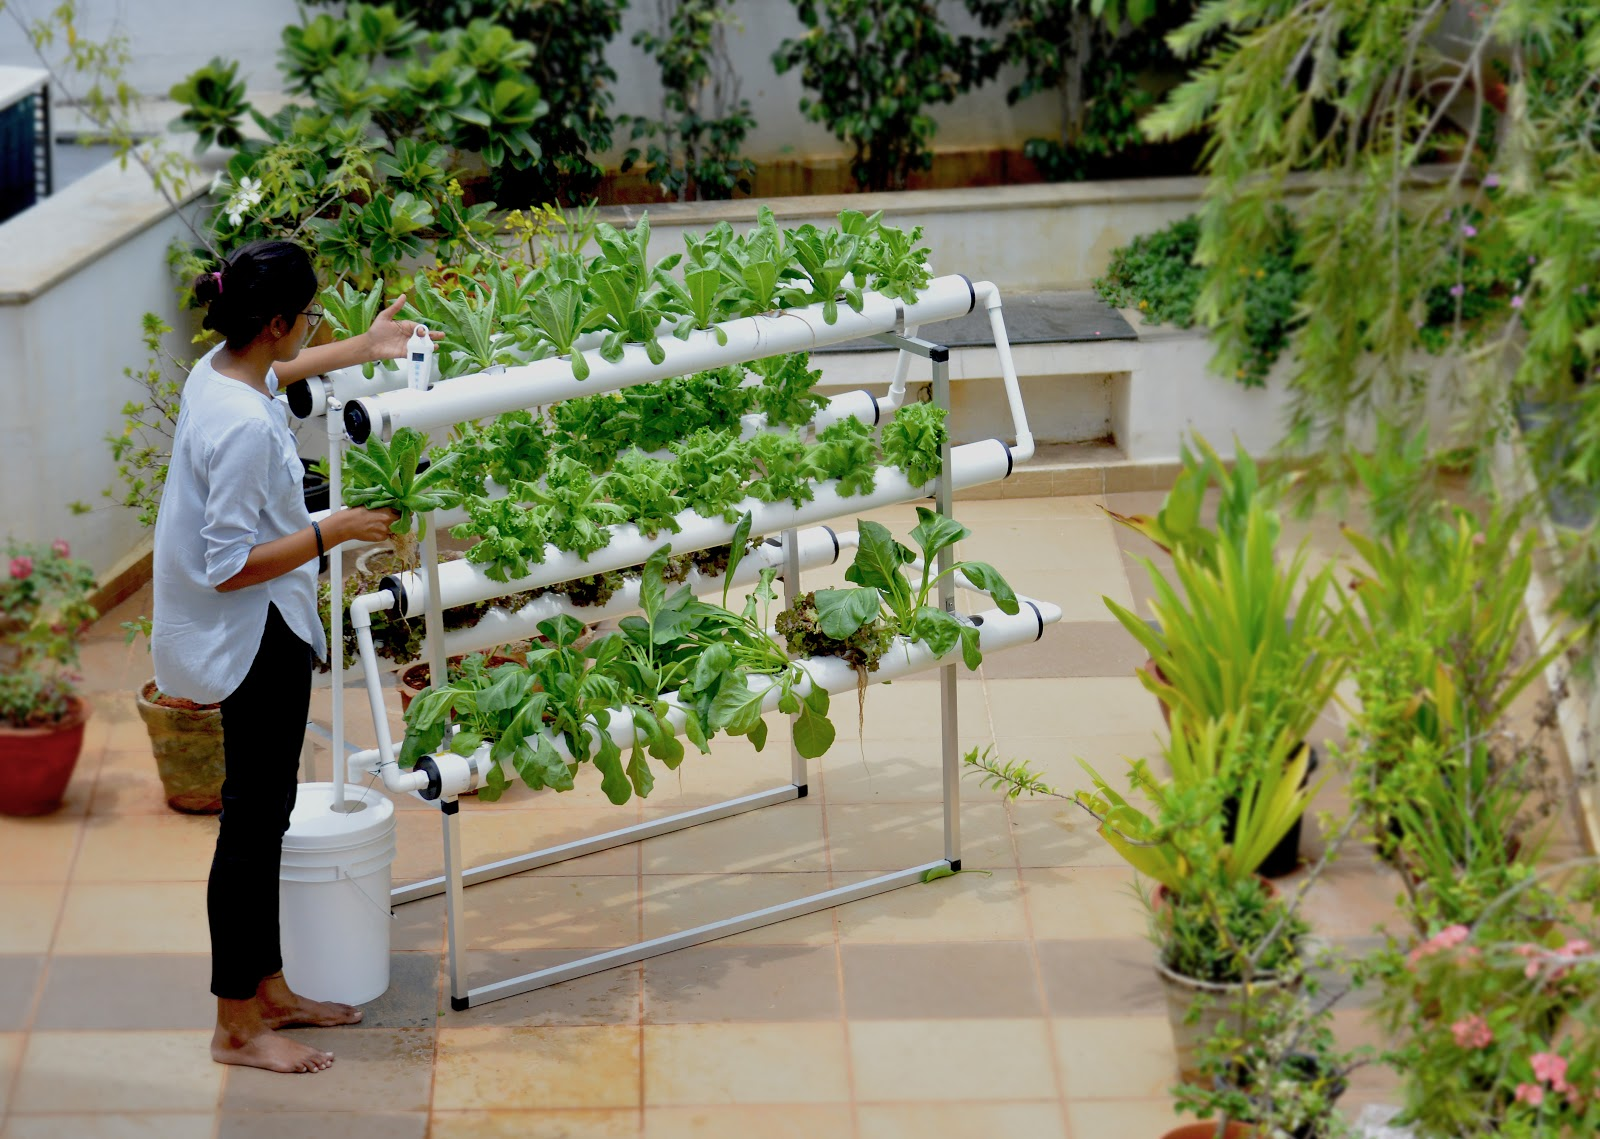 What Hydroponic Supplies Do I Need To Start Hydroponic Gardening?